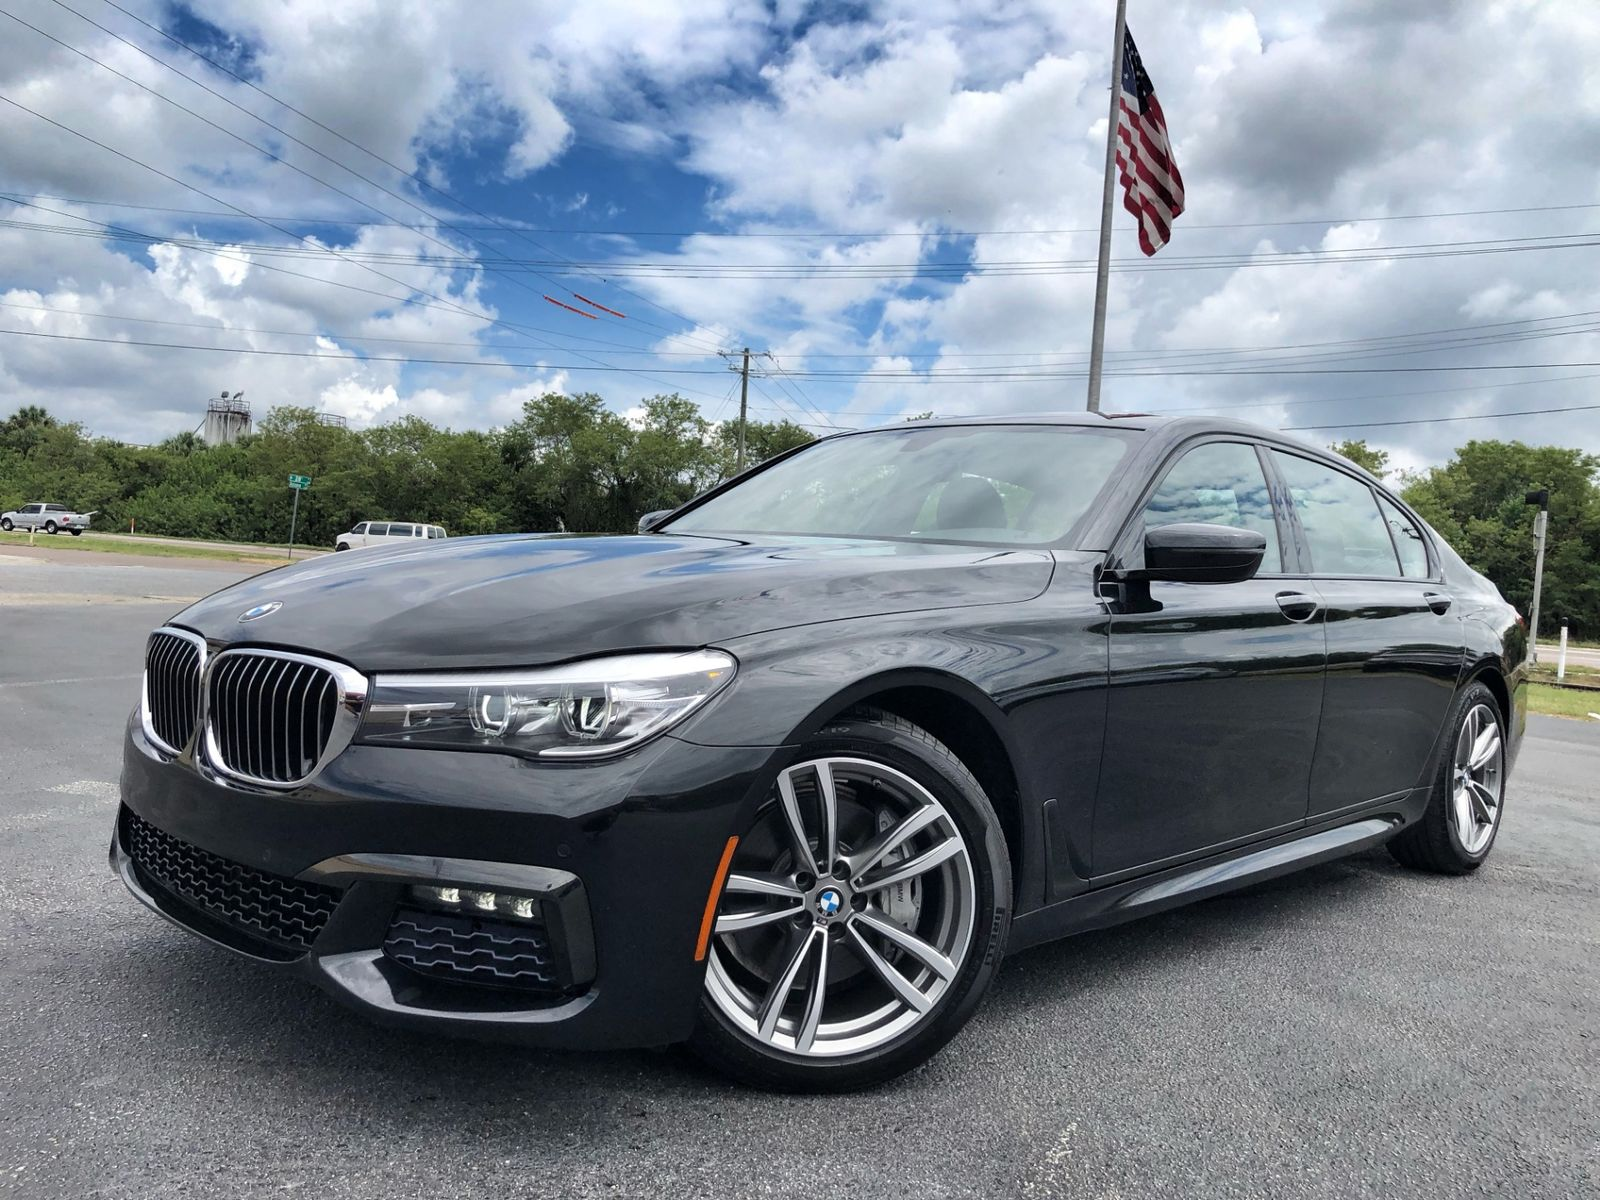 hight resolution of 2018 bmw 740i m sport m sport 1 owner carfax cert 88k new florida bayshore automotive